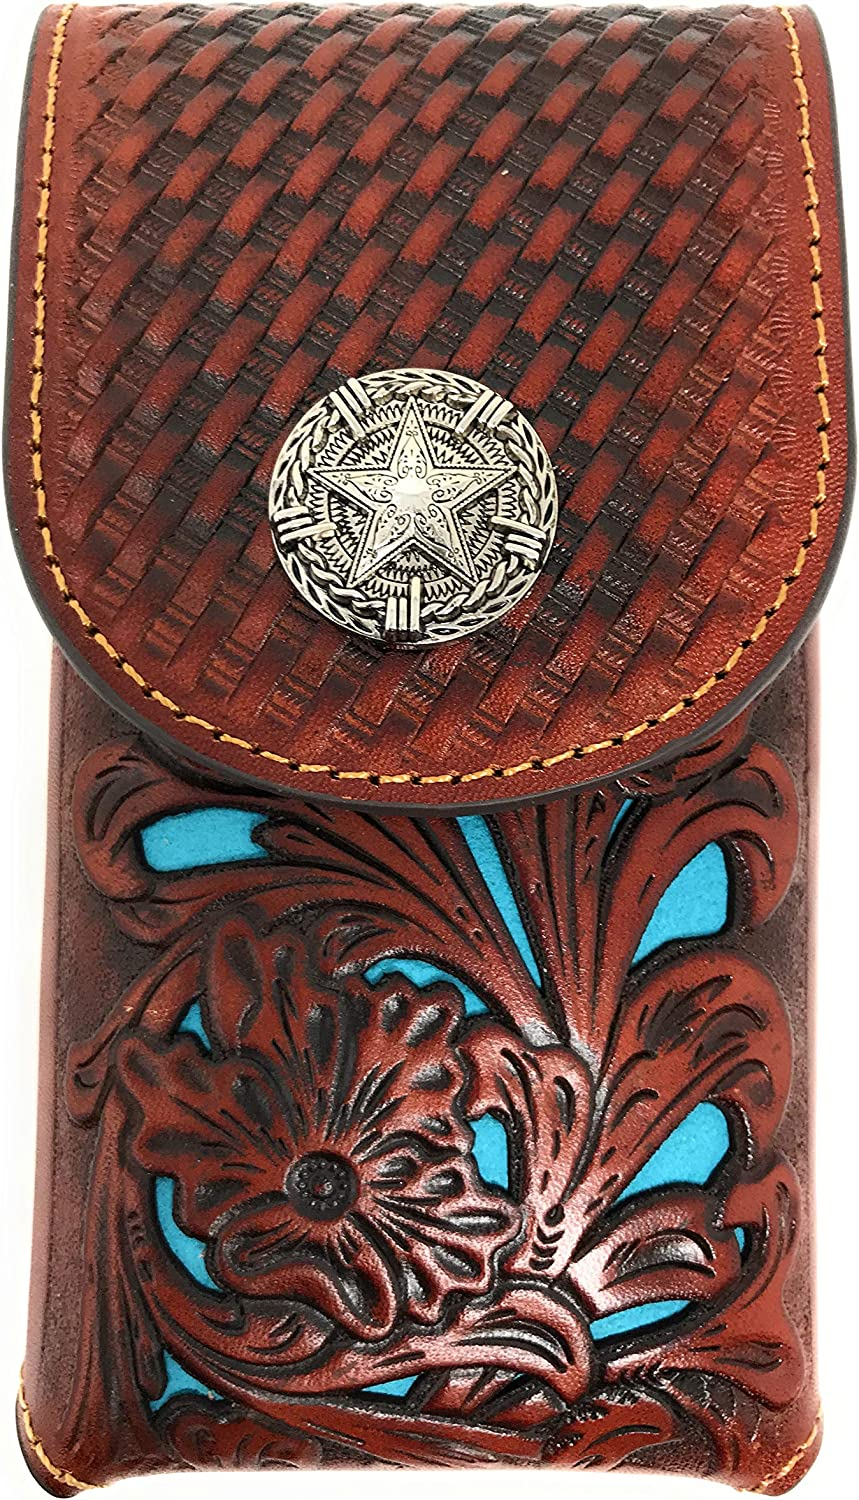 Texas West Western Cowboy Tooled Floral Leather Lone Star Concho Belt Loop Medium Cell Phone Holster Case (Brown/Turquoise)